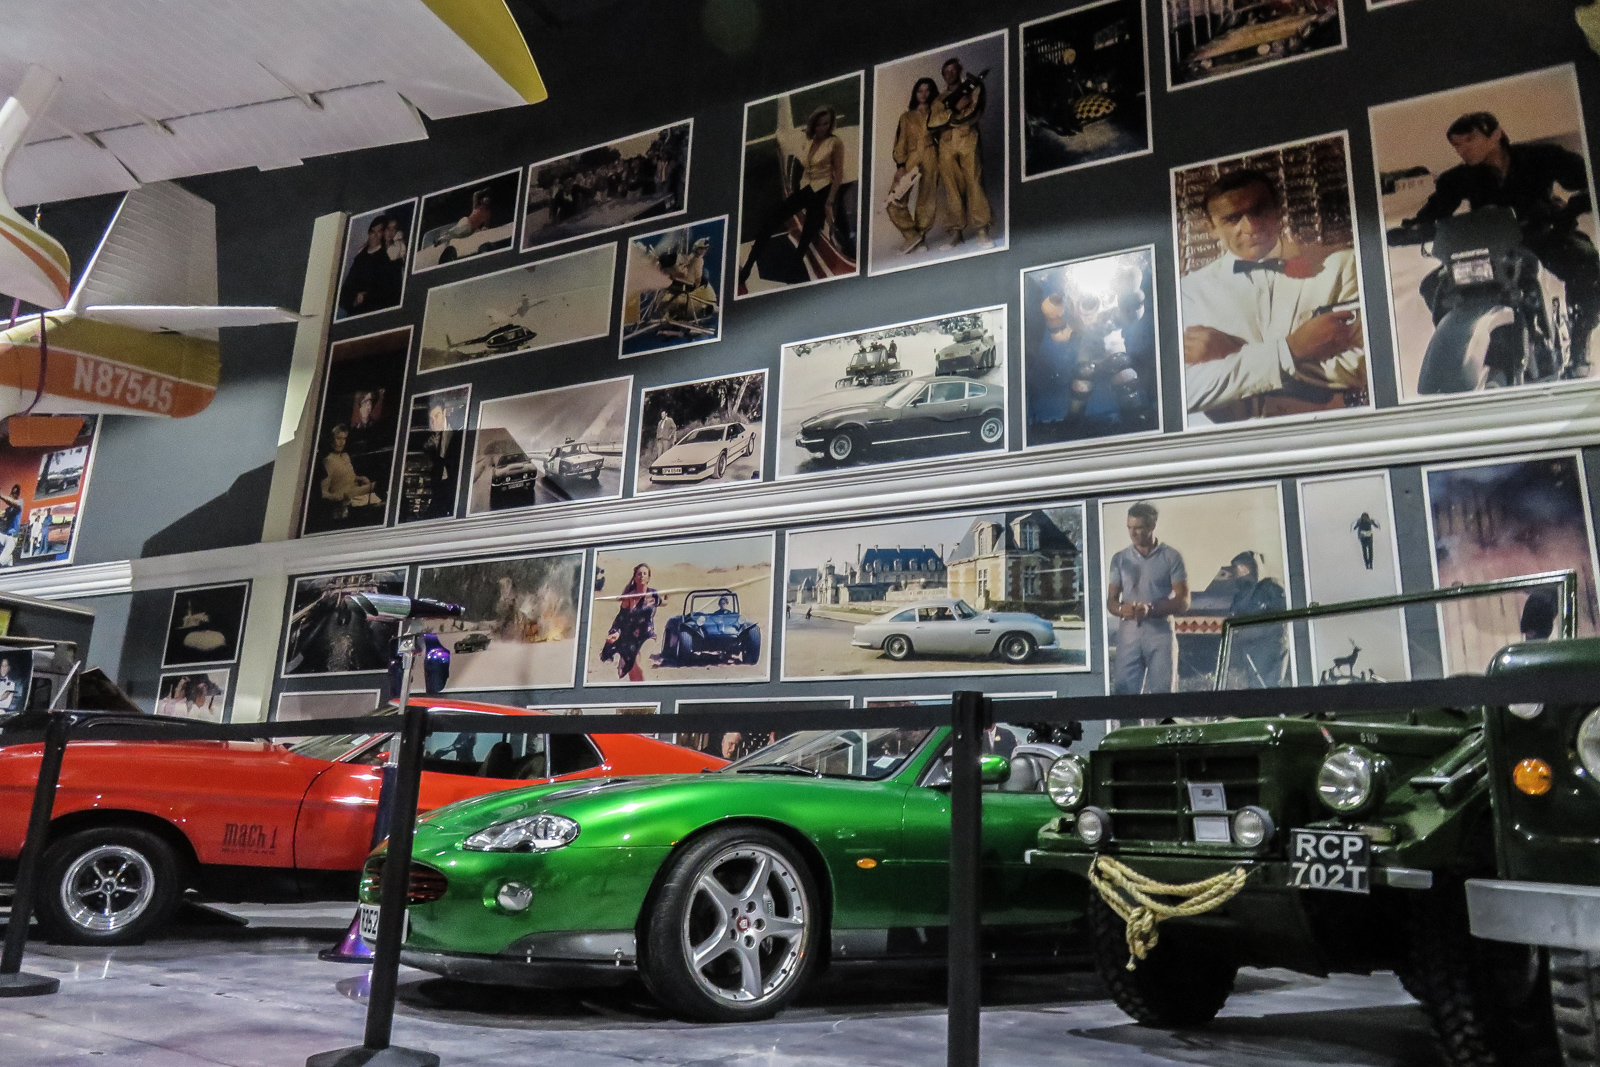 Top things to do in Fort Lauderdale: Auto Museum. Visit the Deezer car collection at the Fort Lauderdale auto museum located in the Xtreme action Park in Fort Lauderdale tour.